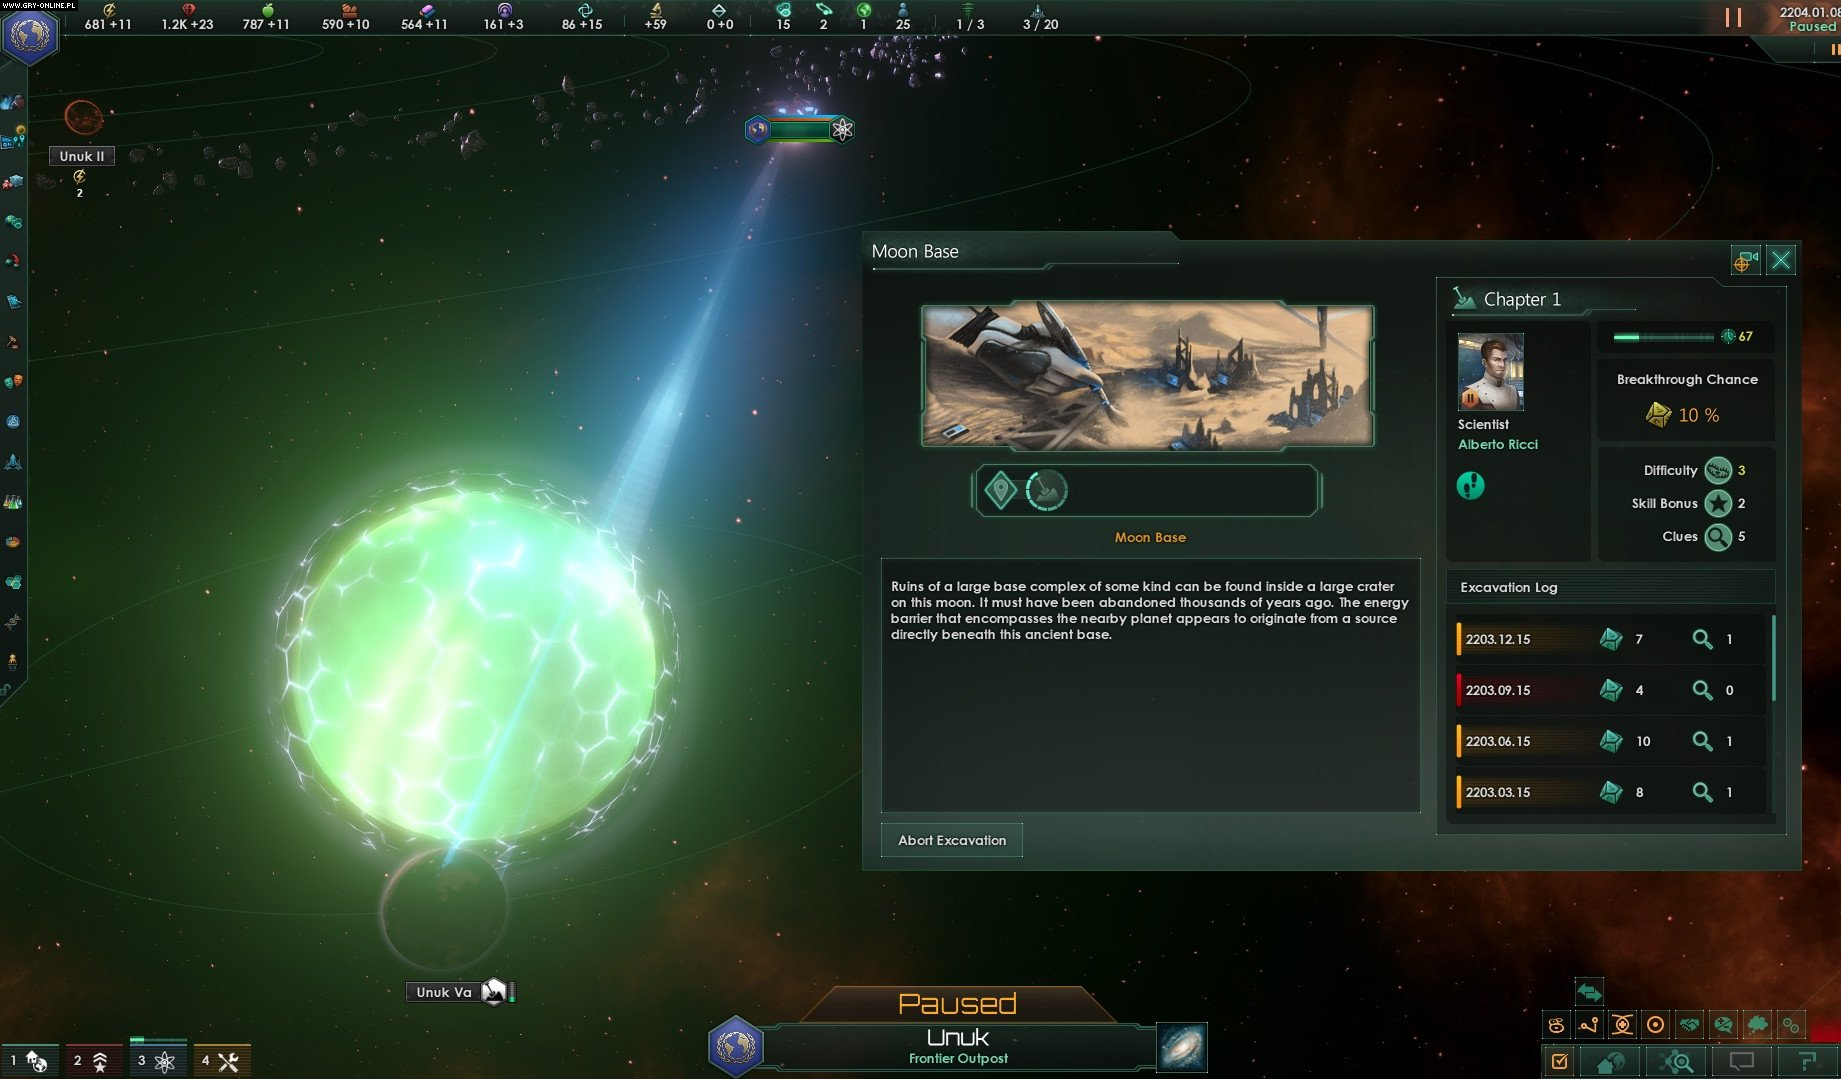 Stellaris: Ancient Relics PC Games Image 2/4, Paradox Development Studio, Paradox Interactive